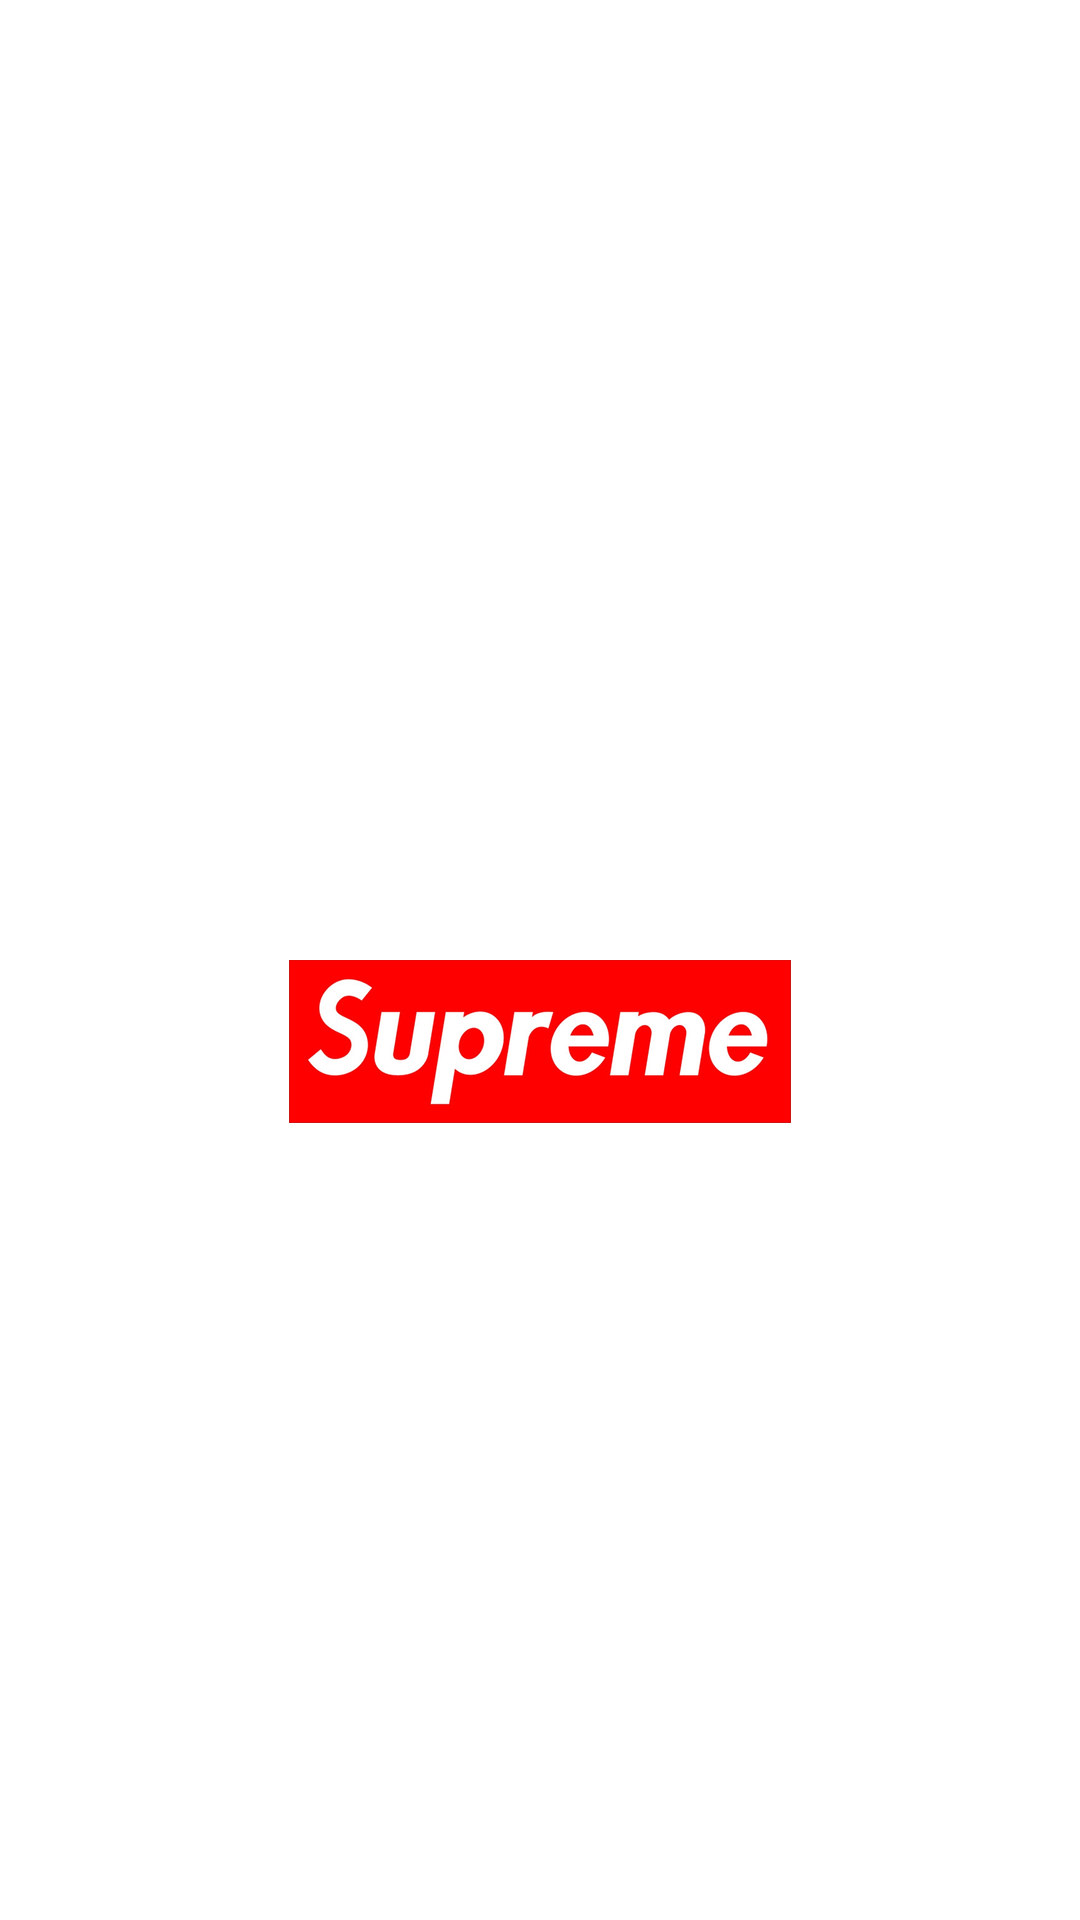 supreme01 - 23 Supreme HQ Smartphone Wallpaper Collection